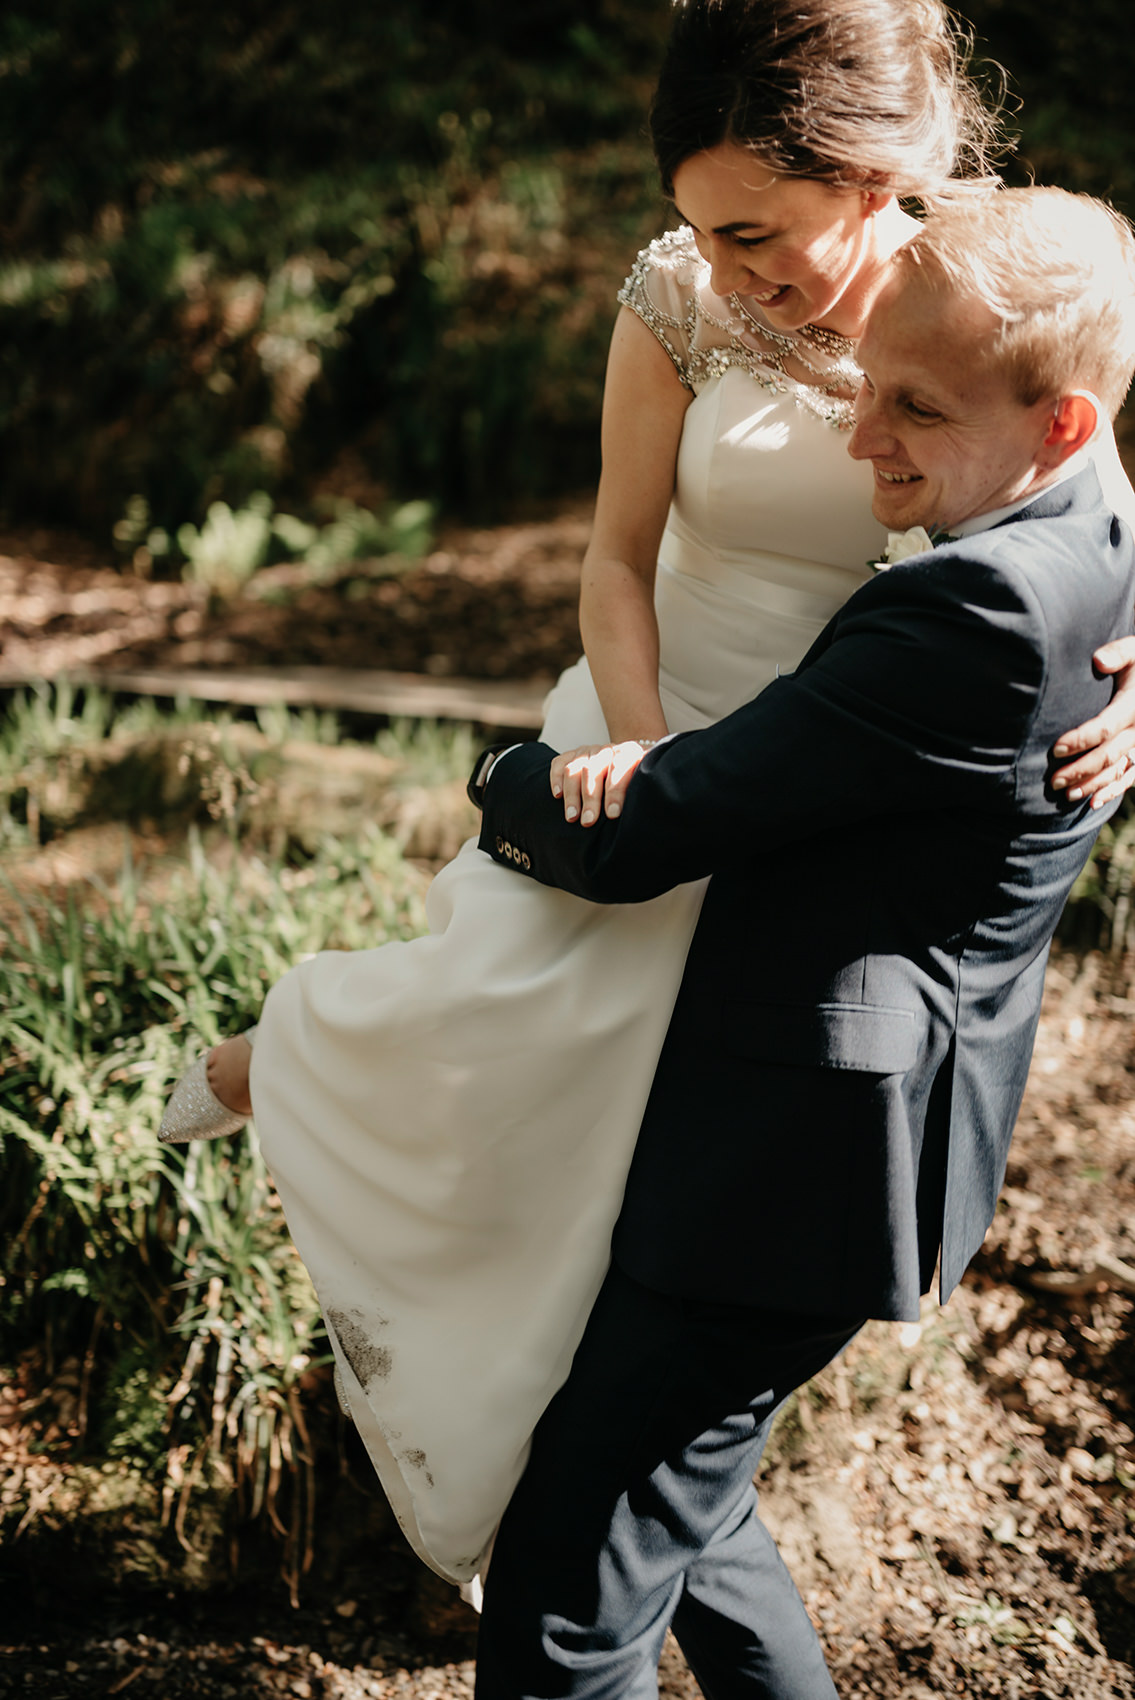 Ross carrying his bride over muddy puddles